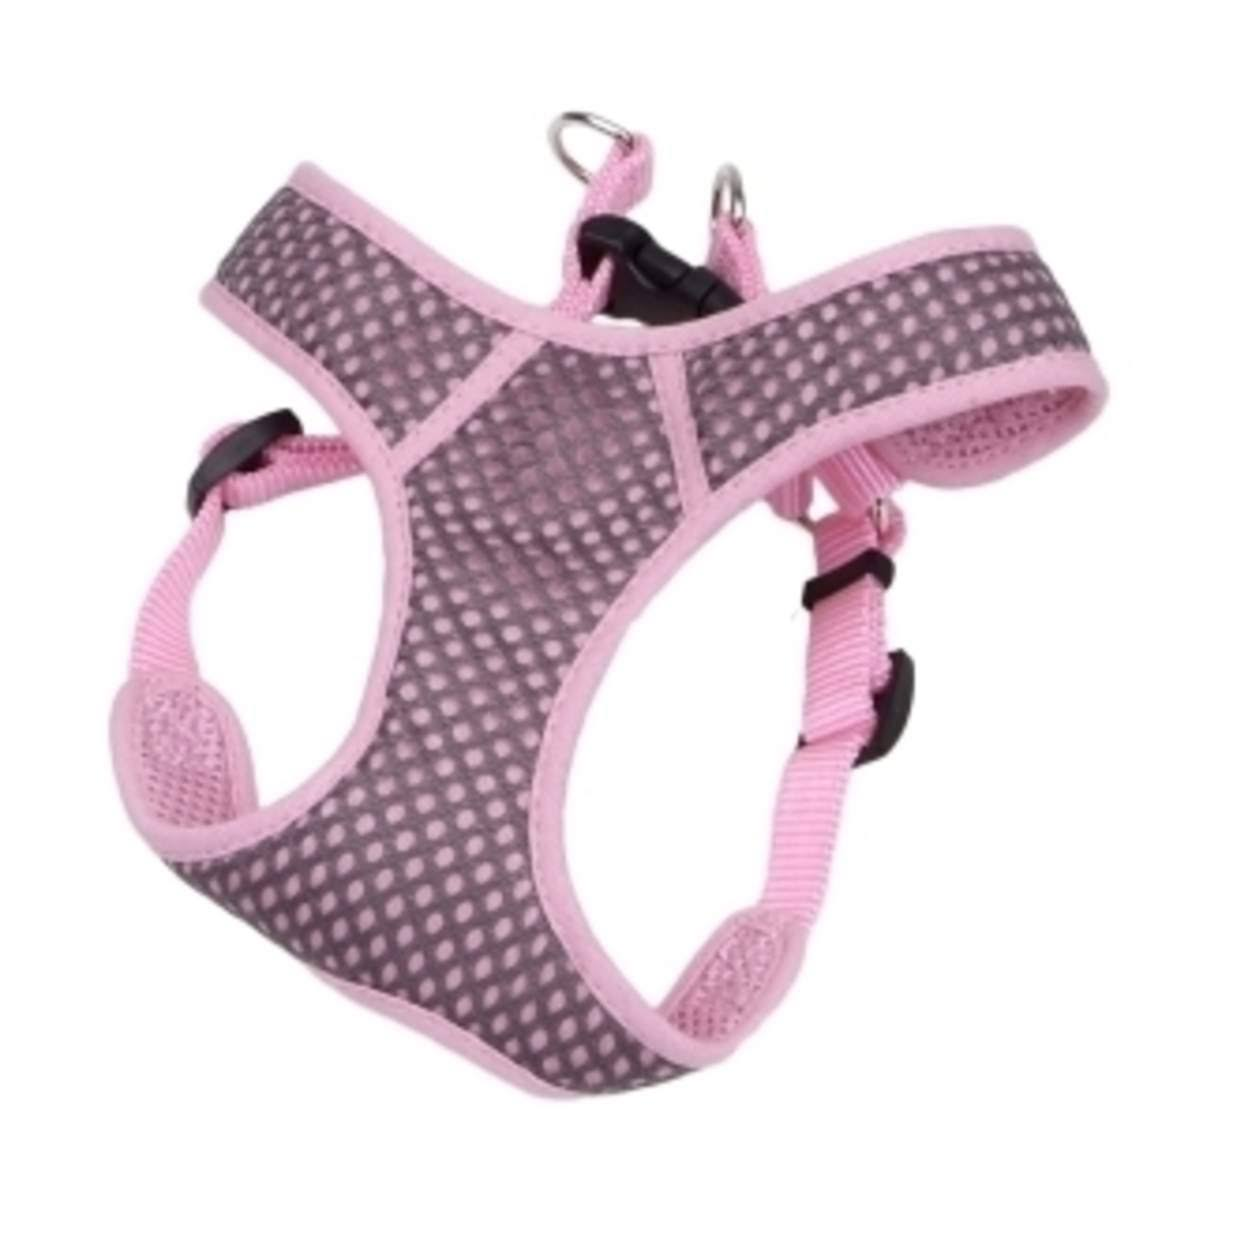 "Coastal Pet Products Comfort Soft Sport Wrap Adjustable Dog Harness - 2XSmall, 14-16"" Girth, Grey/Pink"